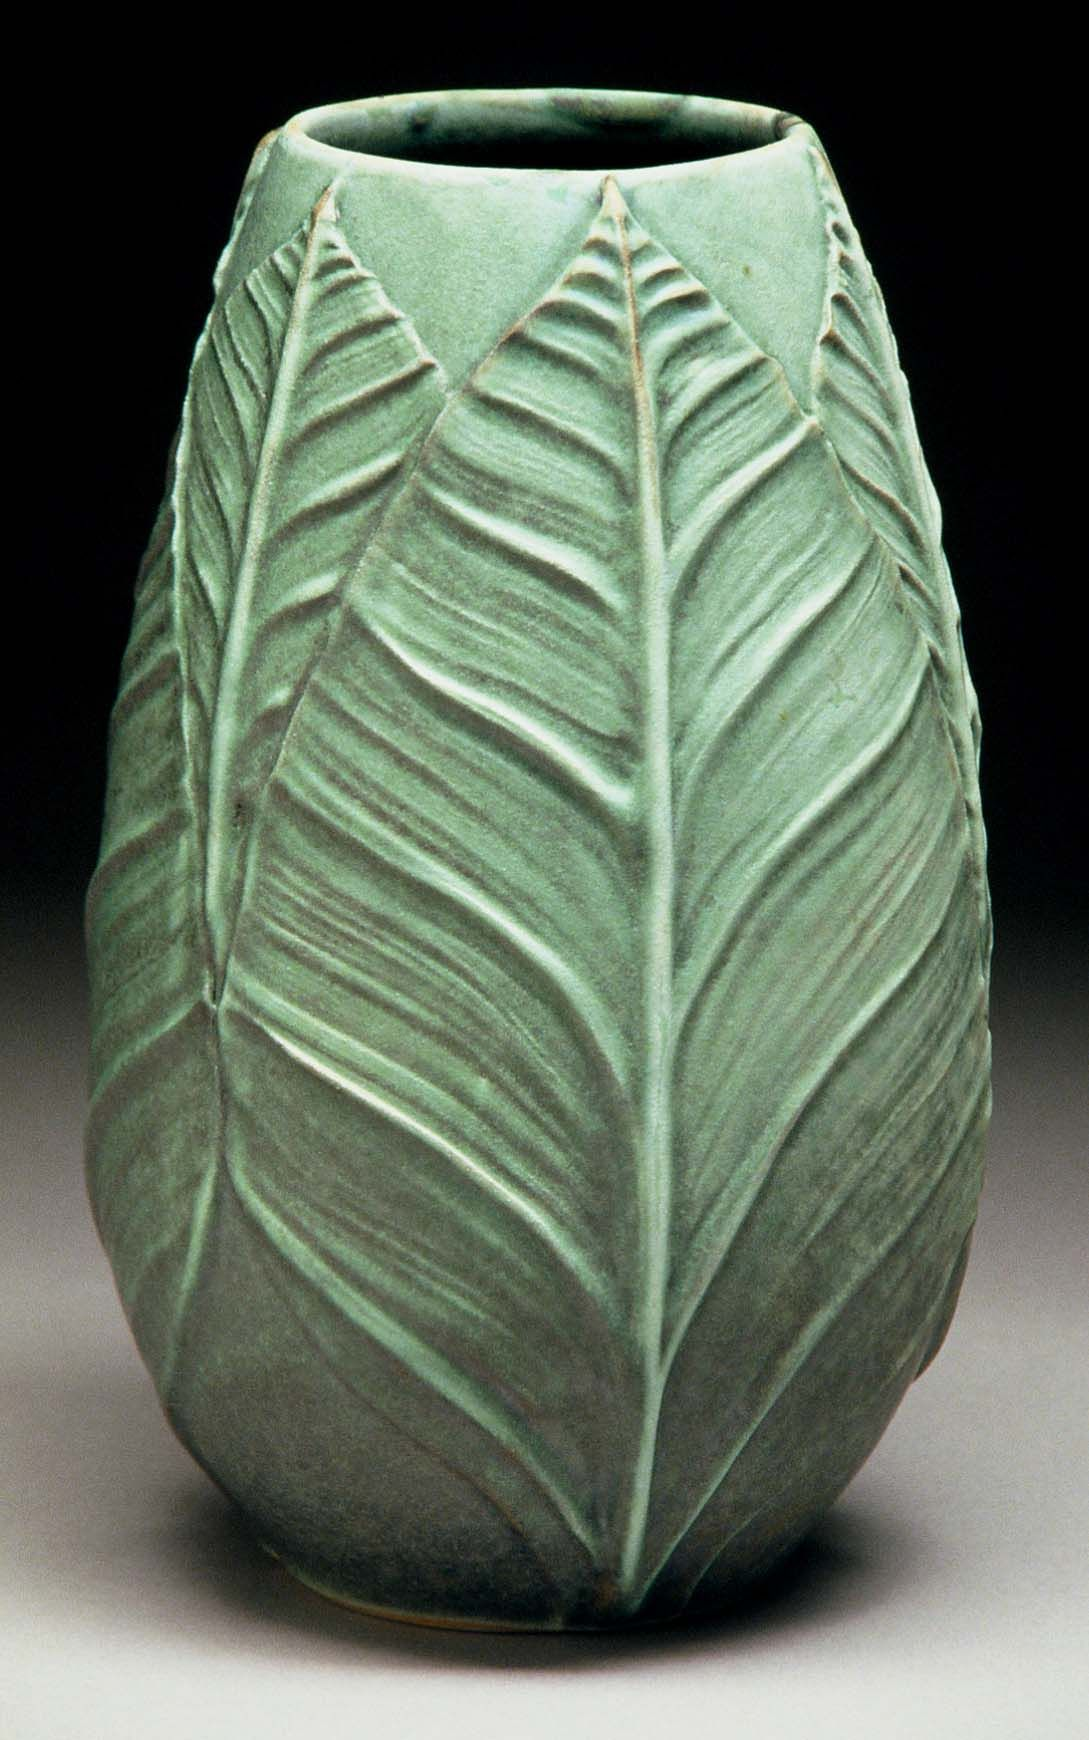 richard vincent pottery slip design brush on leaf pattern